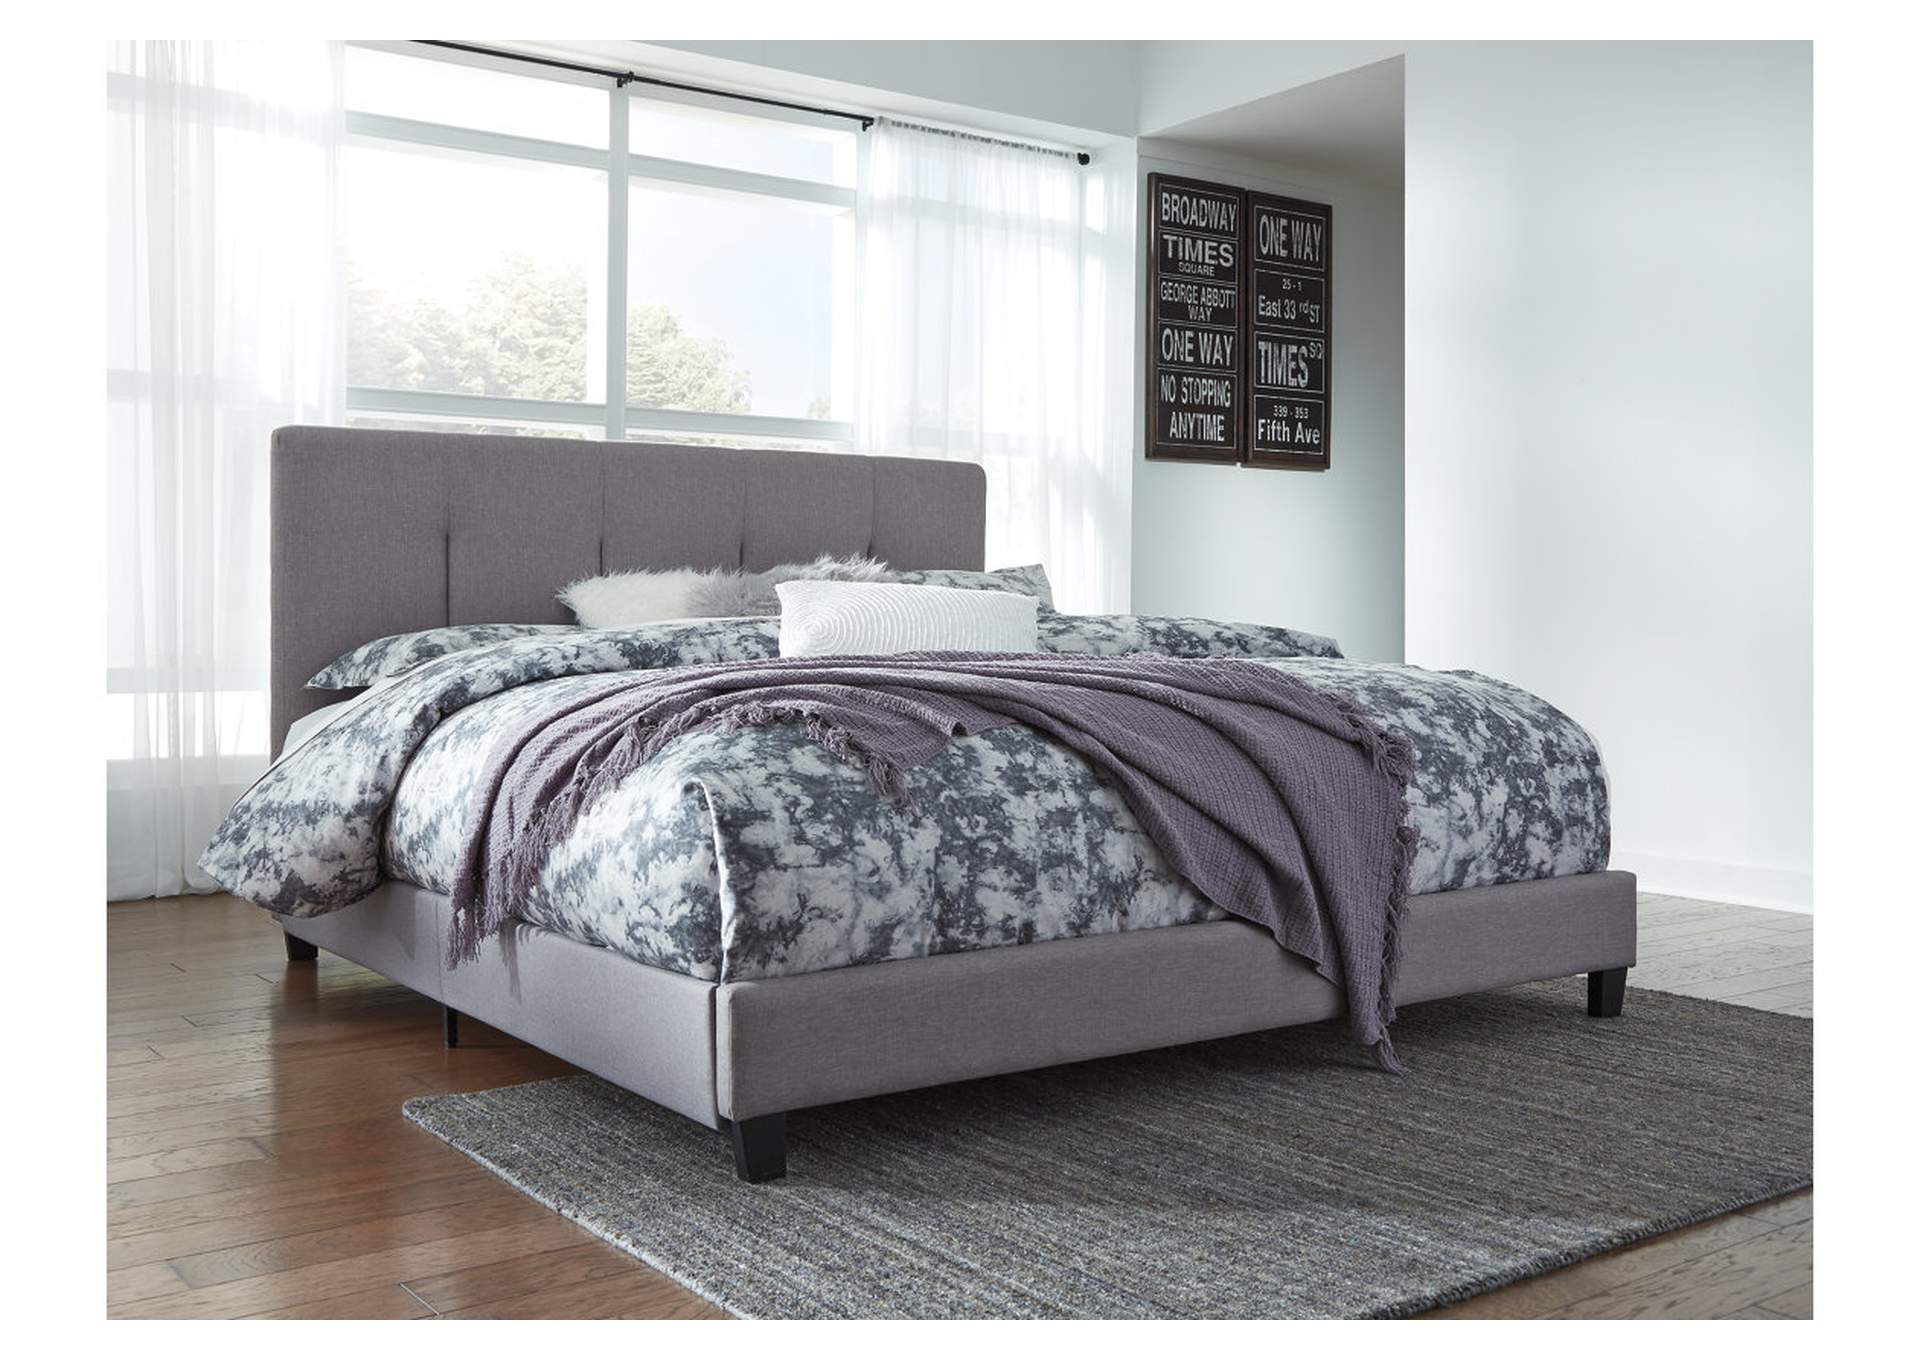 Dolante Gray King Upholstered Bed,Signature Design By Ashley